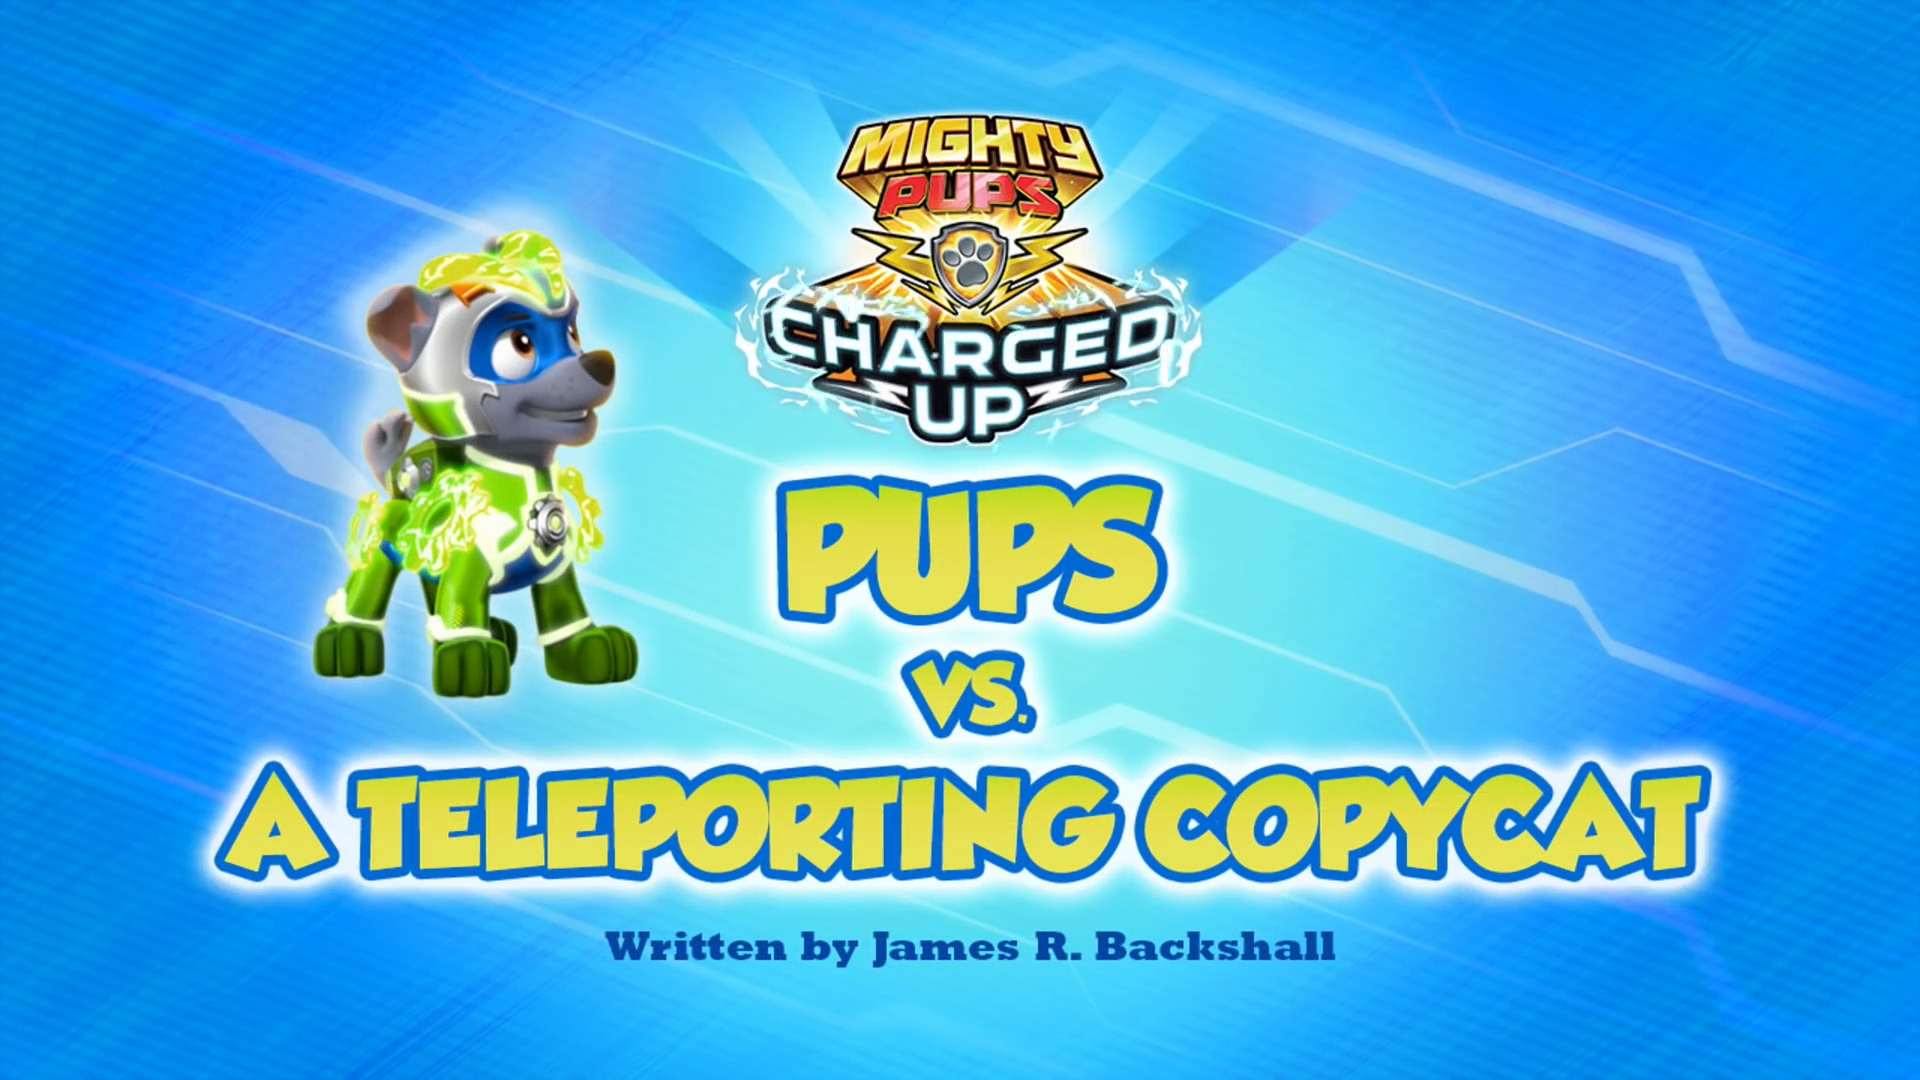 PAW Patrol Original 5s: Charged Up: Pups vs. a Teleporting Copycat